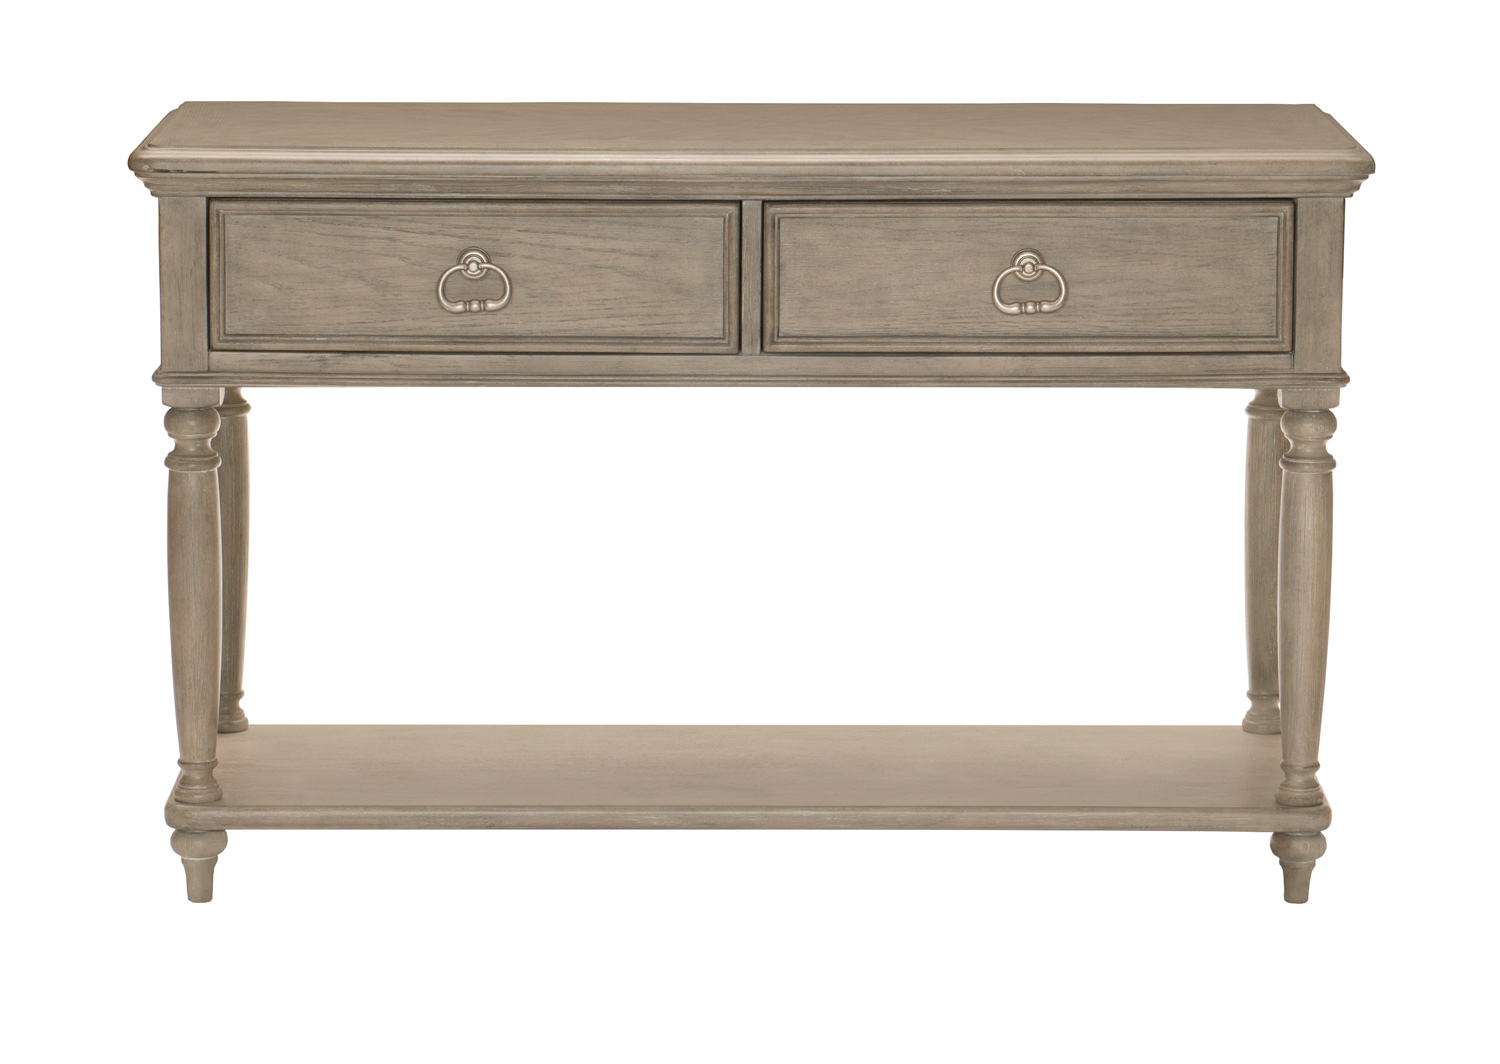 Homelegance Grayling Down Sofa Table with Two Functional Drawers - Driftwood Gray